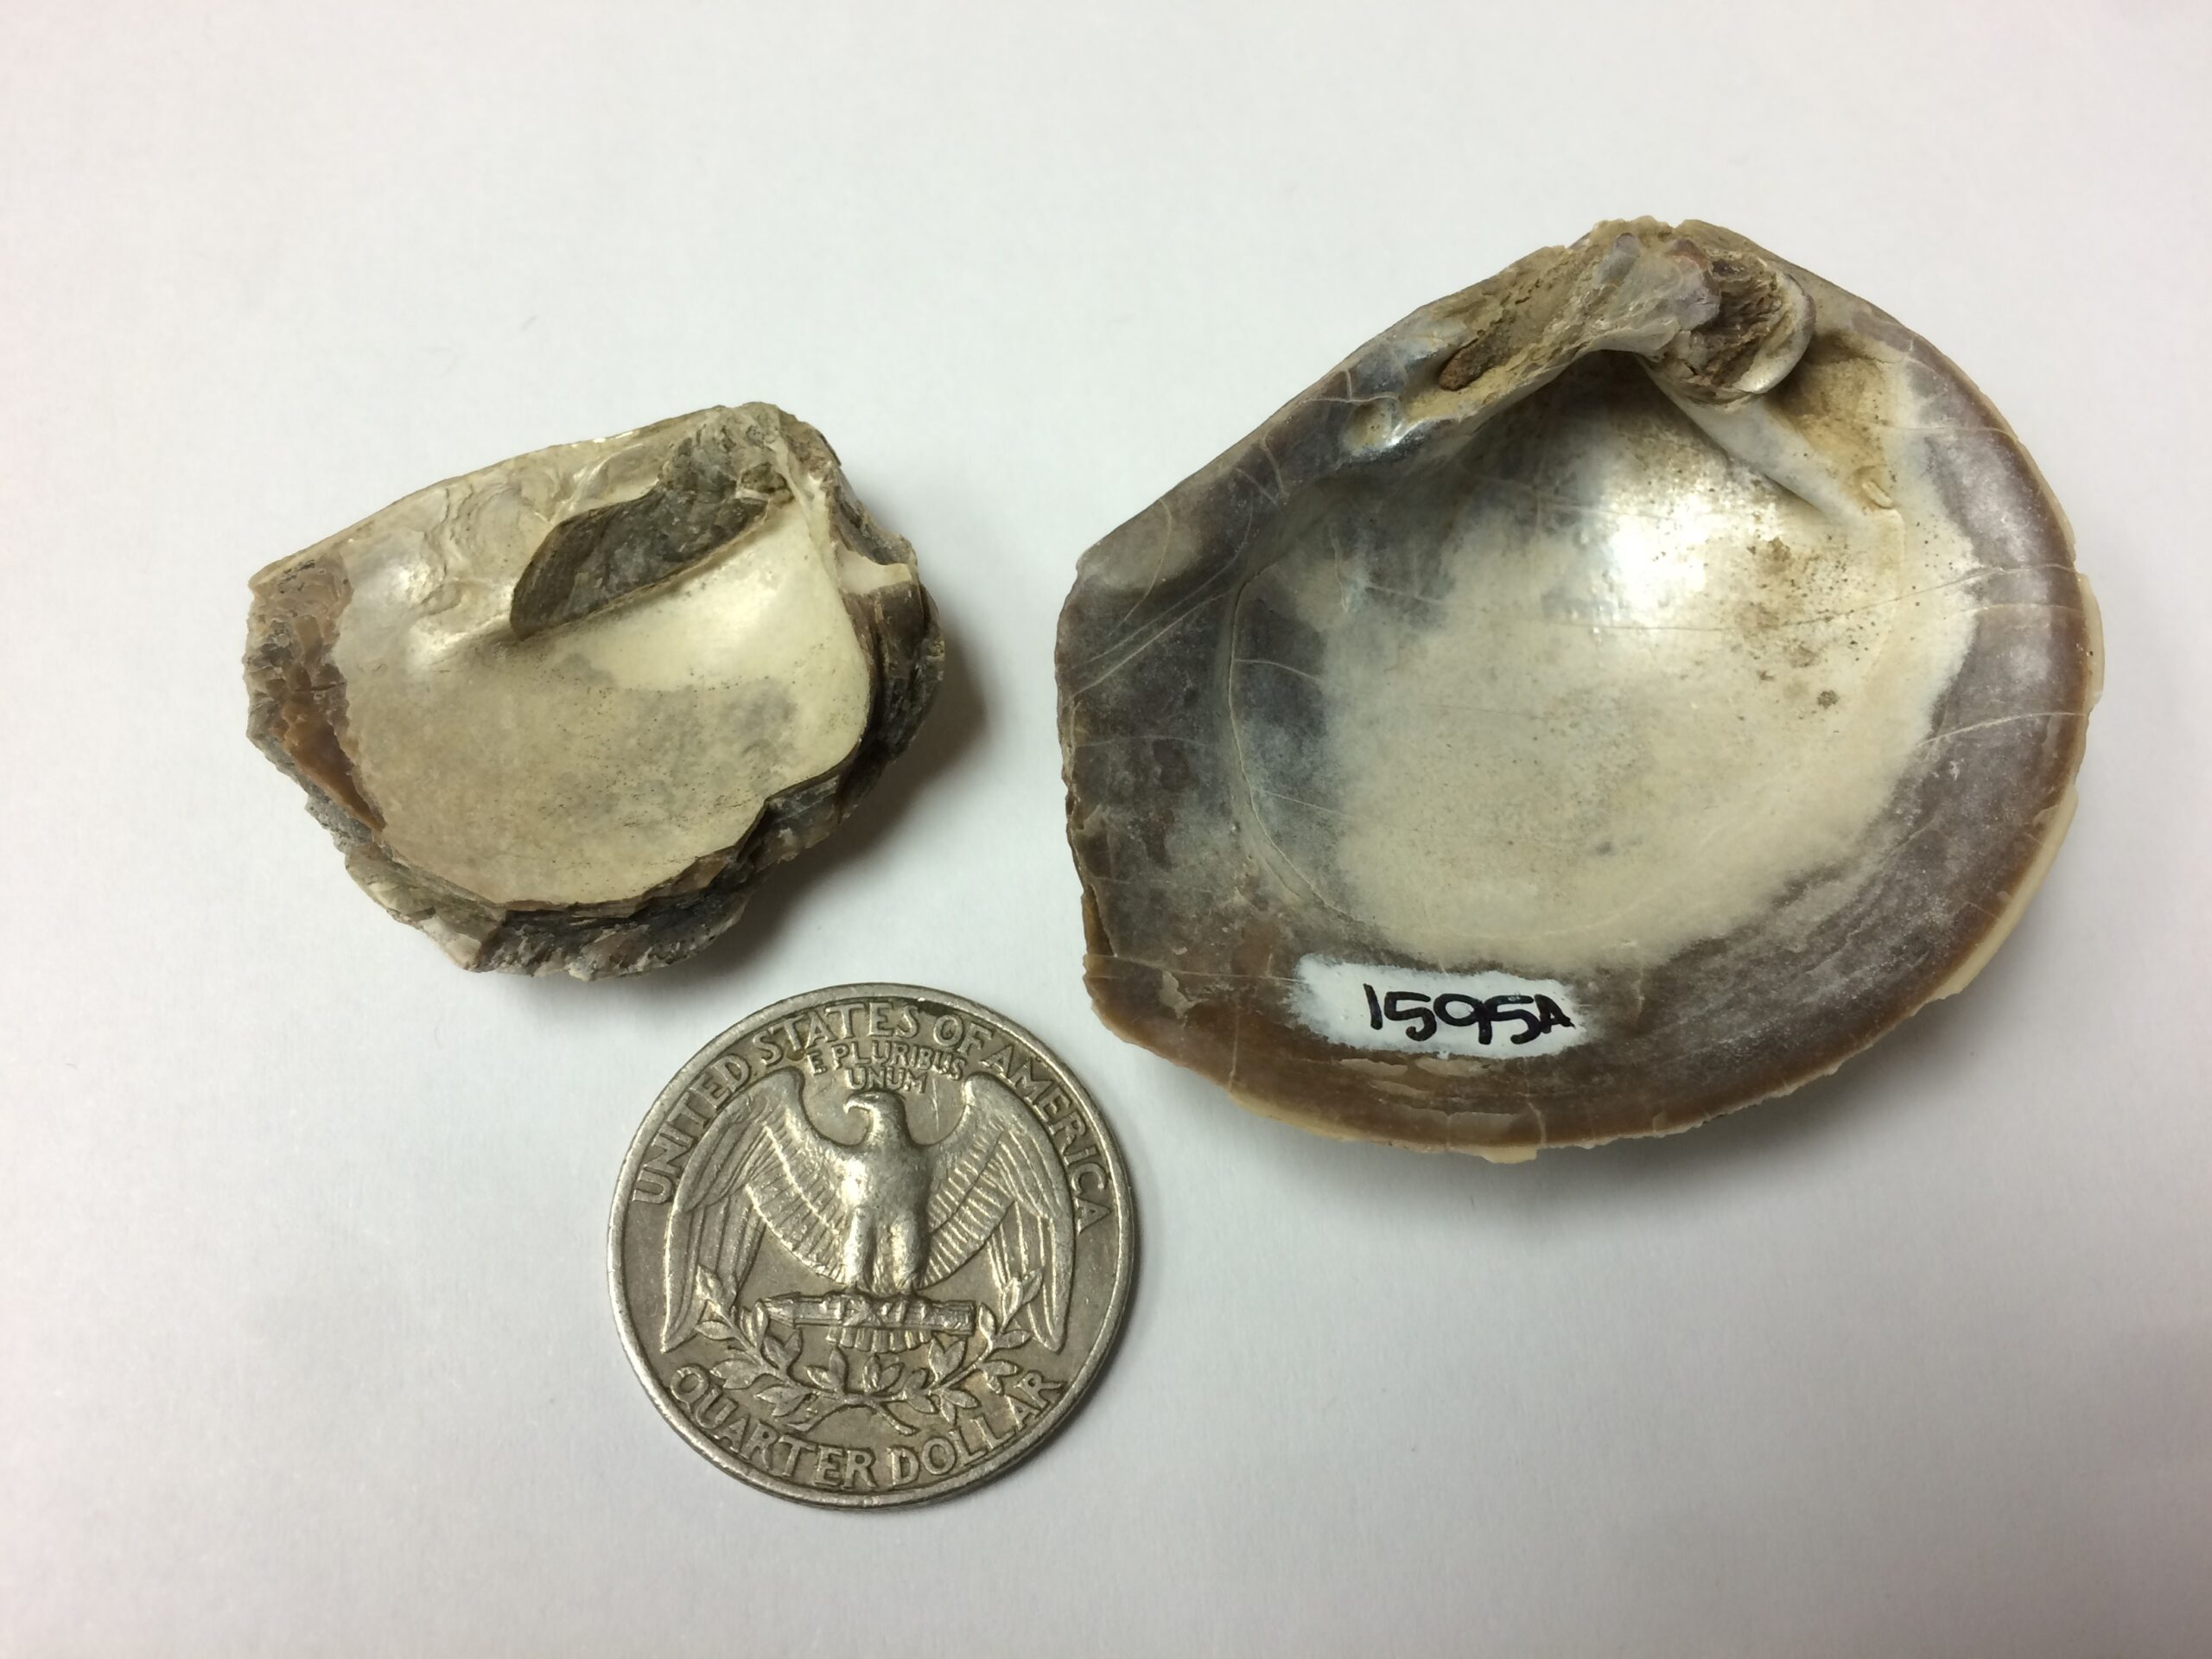 Two iridescent fossil shells, one slightly larger, one slightly smaller than a quarter